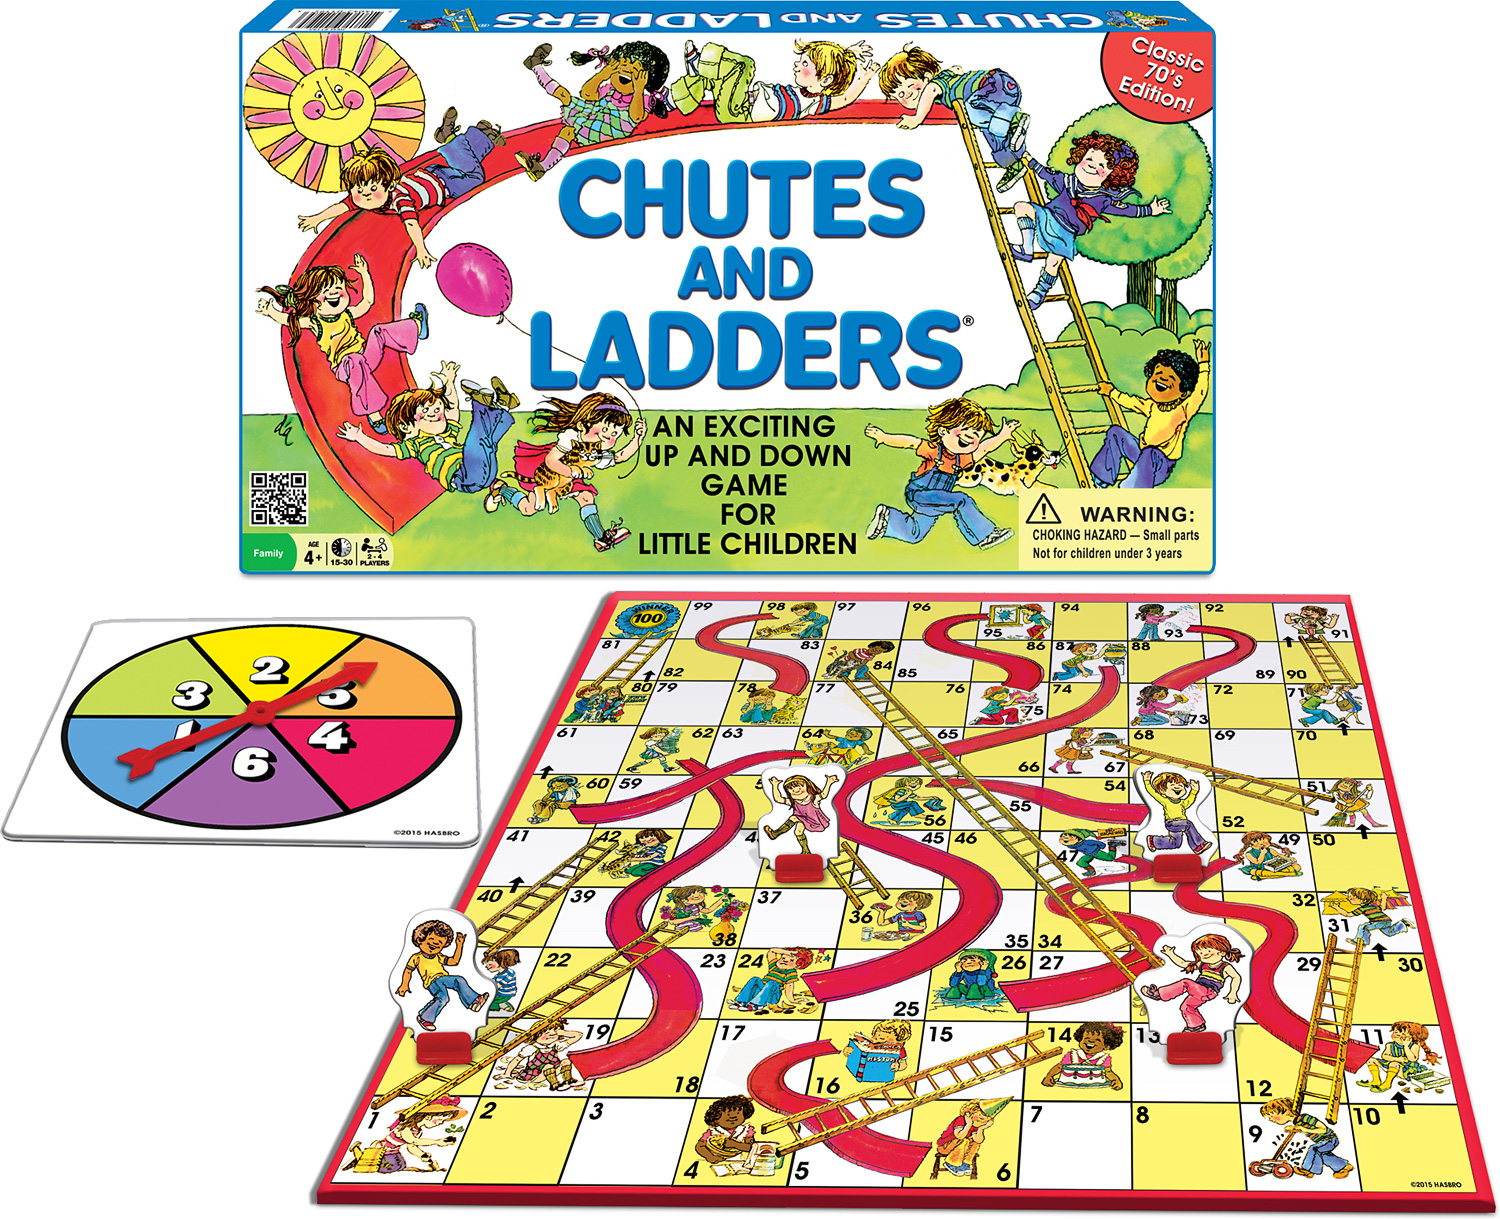 CLASSIC CHUTES and LADDERS®